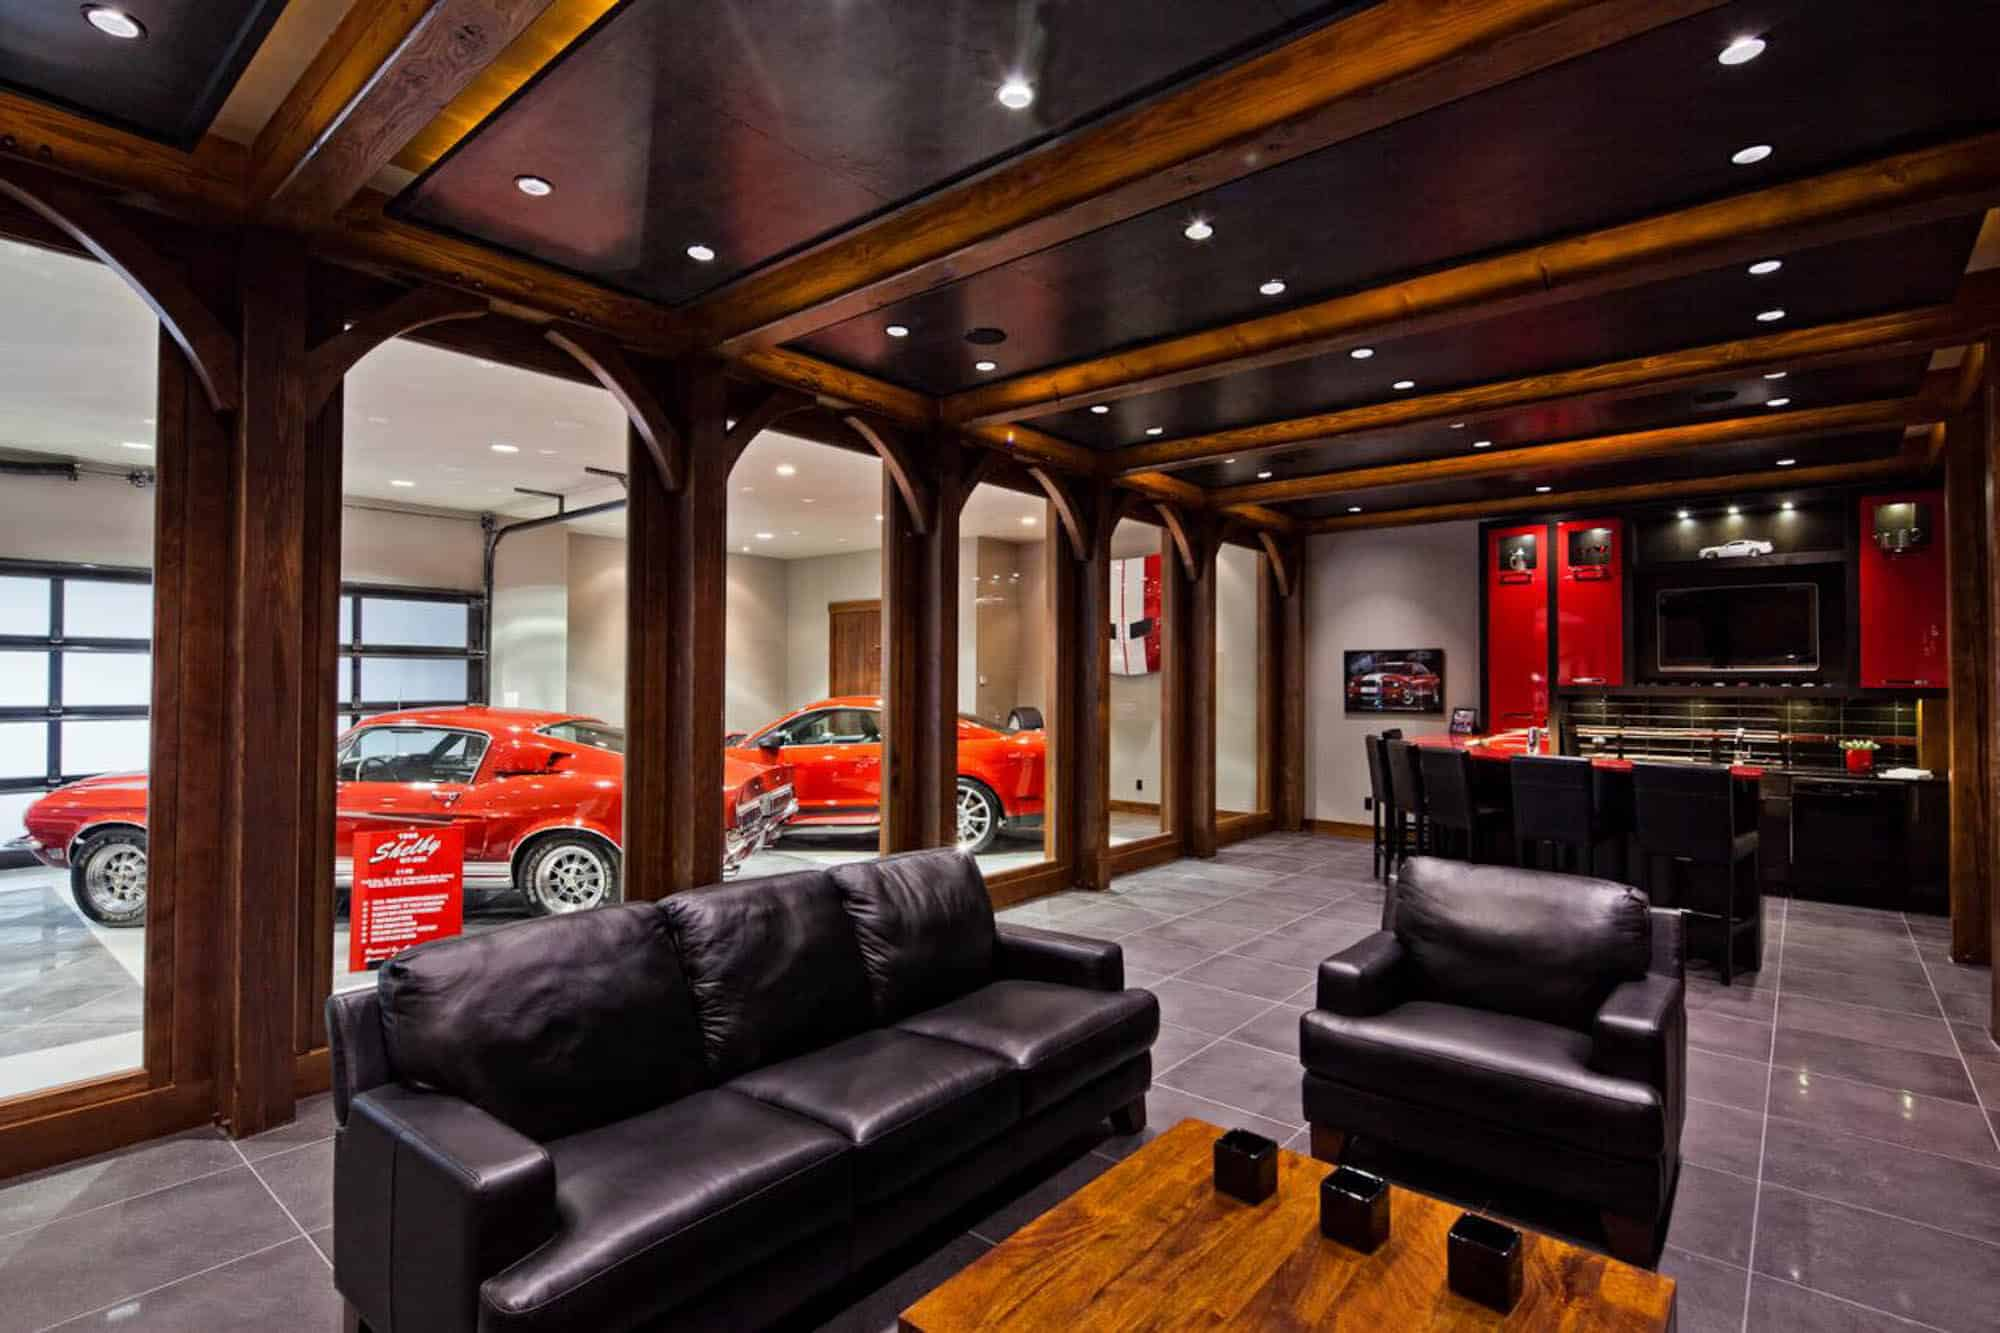 The Man Cave Decor Guide